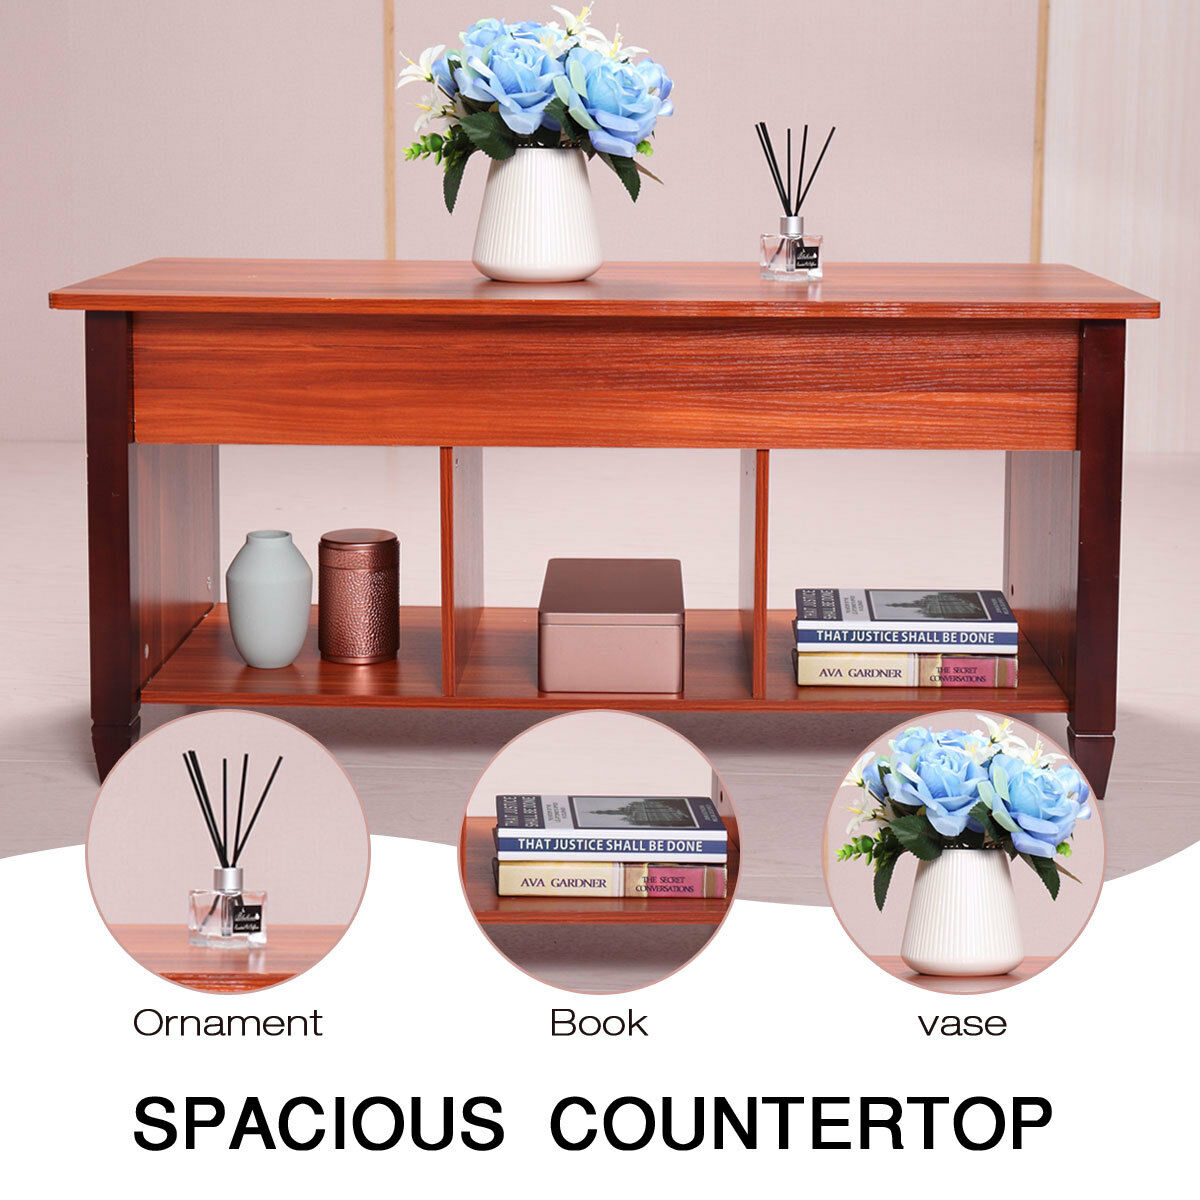 Sensational Lift Top Convertible Coffee Table Solid Wood Desk End Storage Living Room 76 49 Tables Download Free Architecture Designs Scobabritishbridgeorg